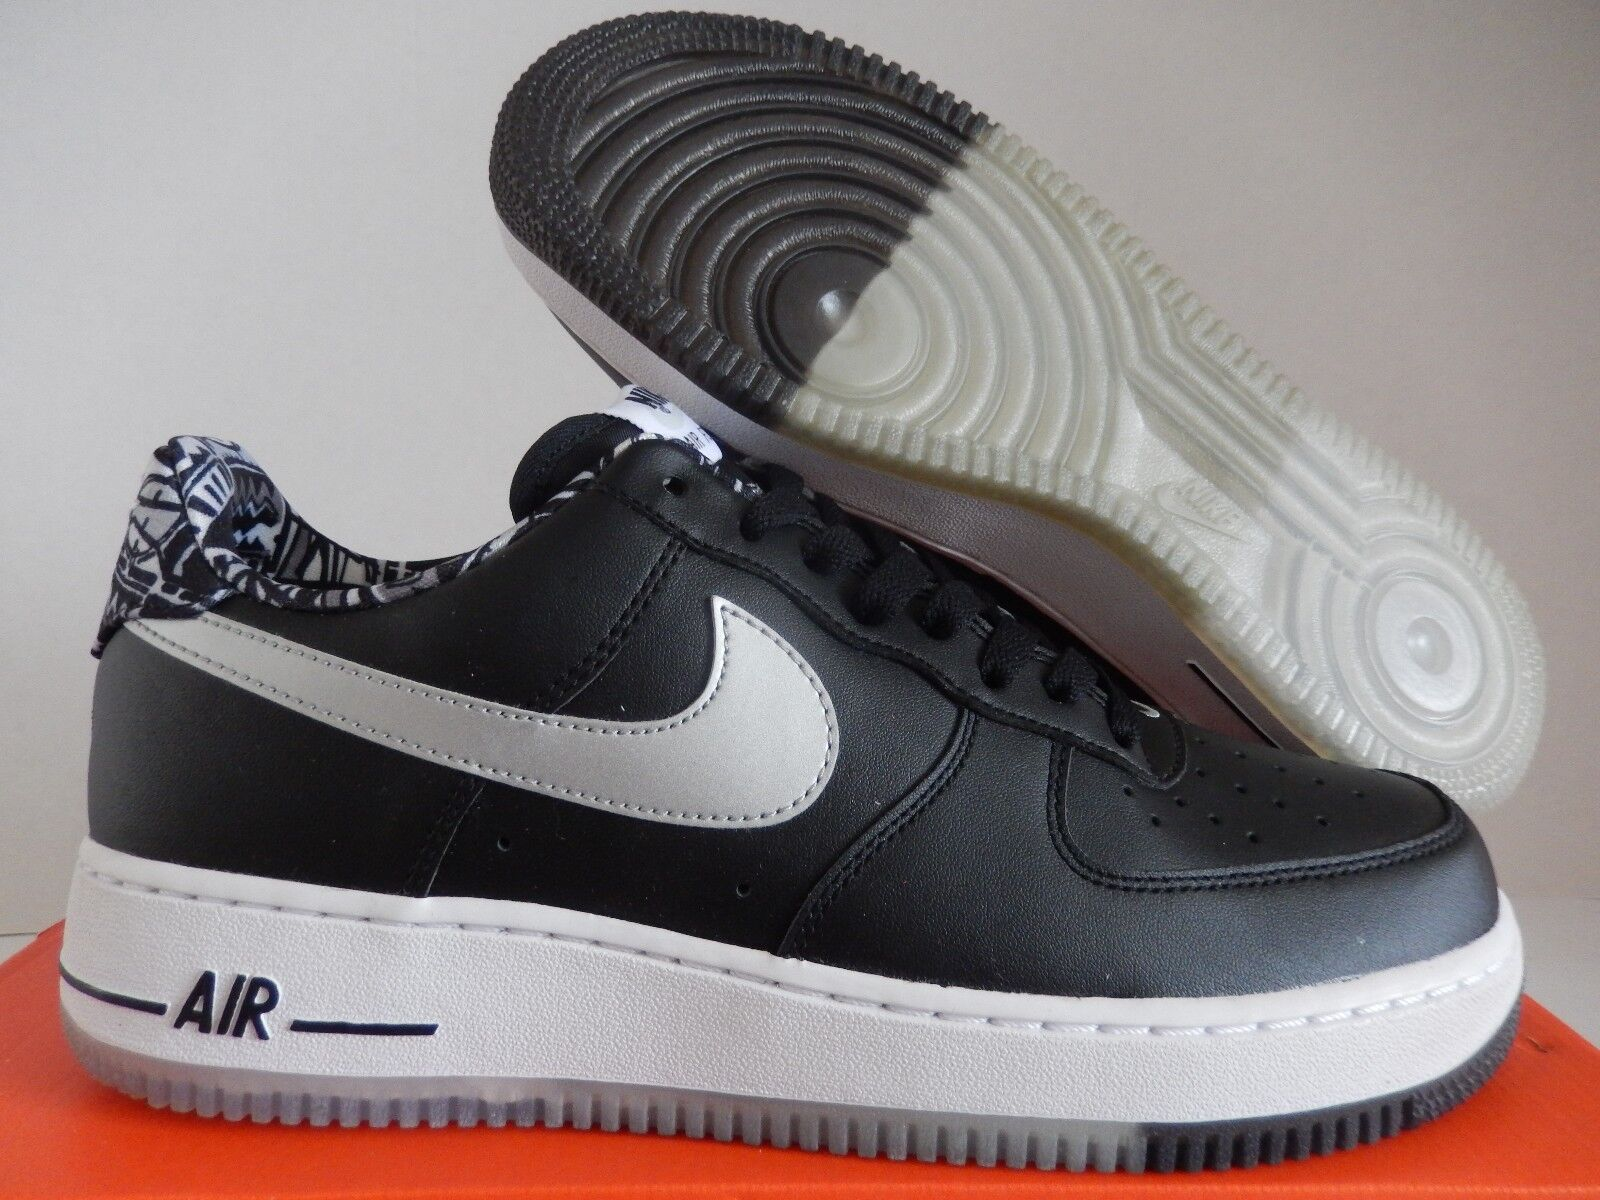 NIKE AIR FORCE 1 Negro- blanco o-plateado Tamaño [488298-089] 9